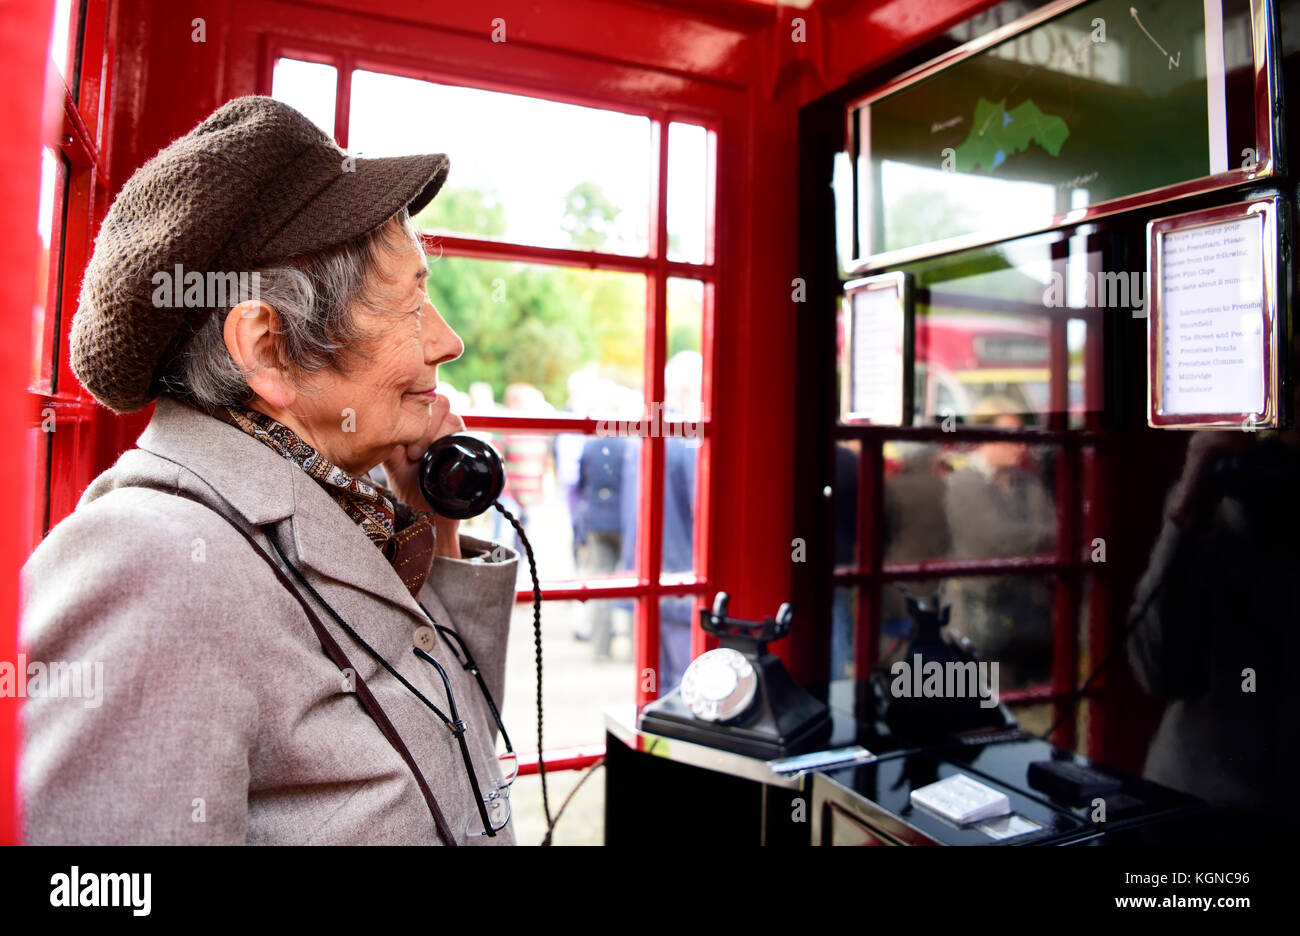 Elderly local resident using a traditional red phone box which has been converted into a small visitors centre. - Stock Image